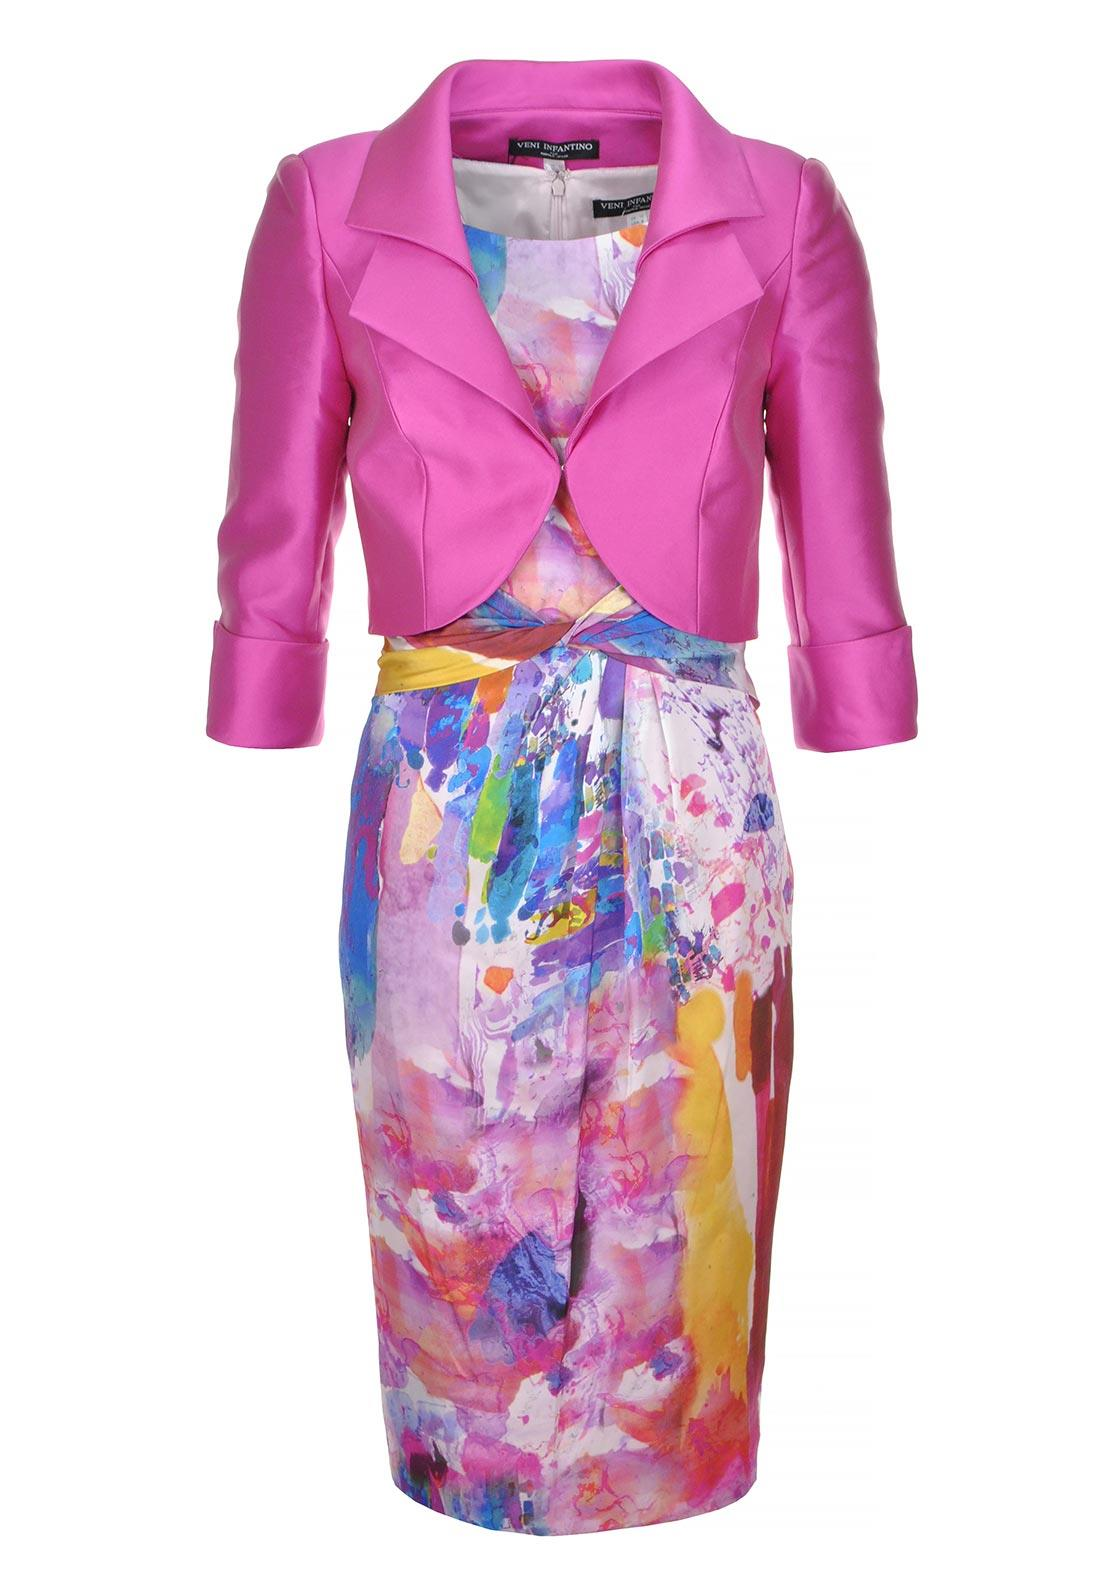 Veni Infantino for Ronald Joyce Special Occasion Dress and Jacket, Pink Multi